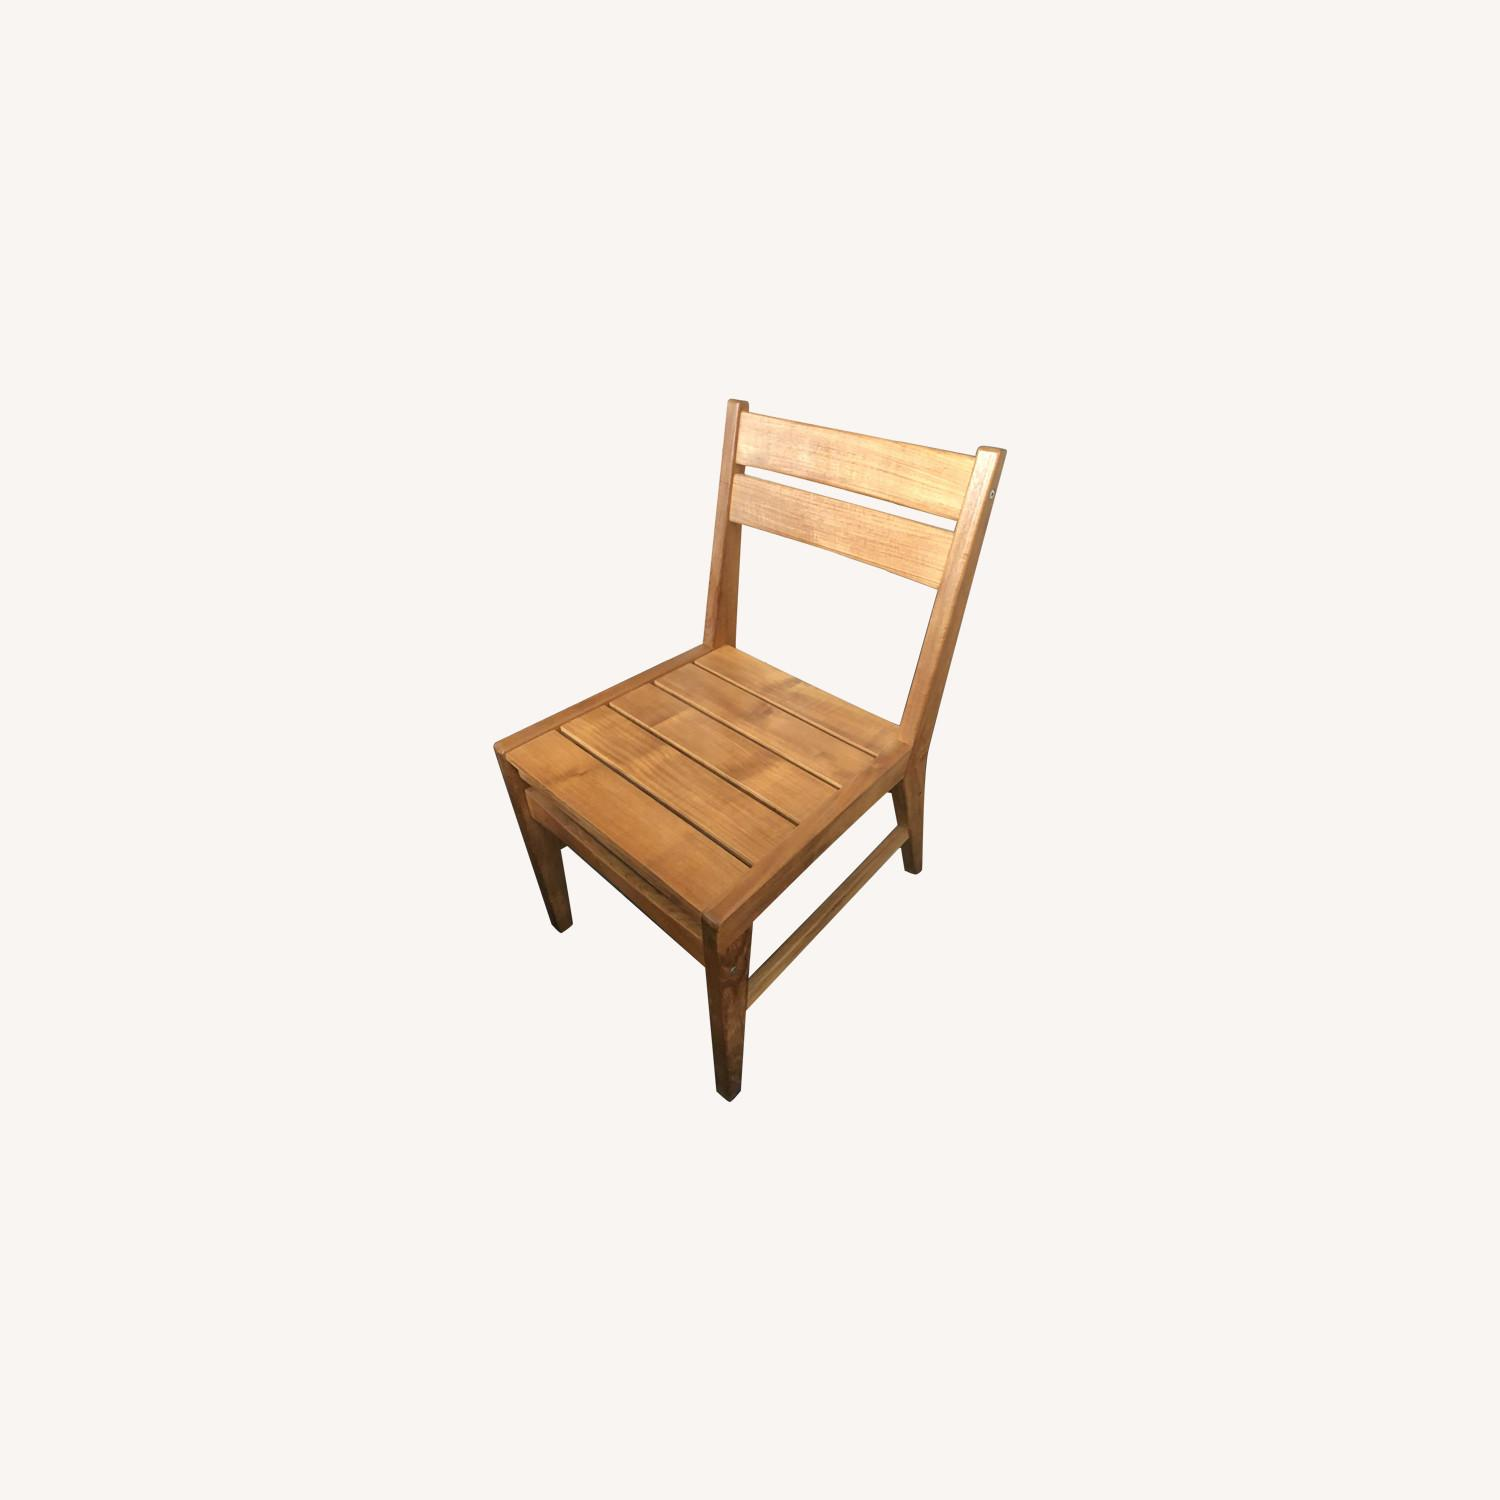 West Elm Wooden Chairs (Set of 2) - image-0